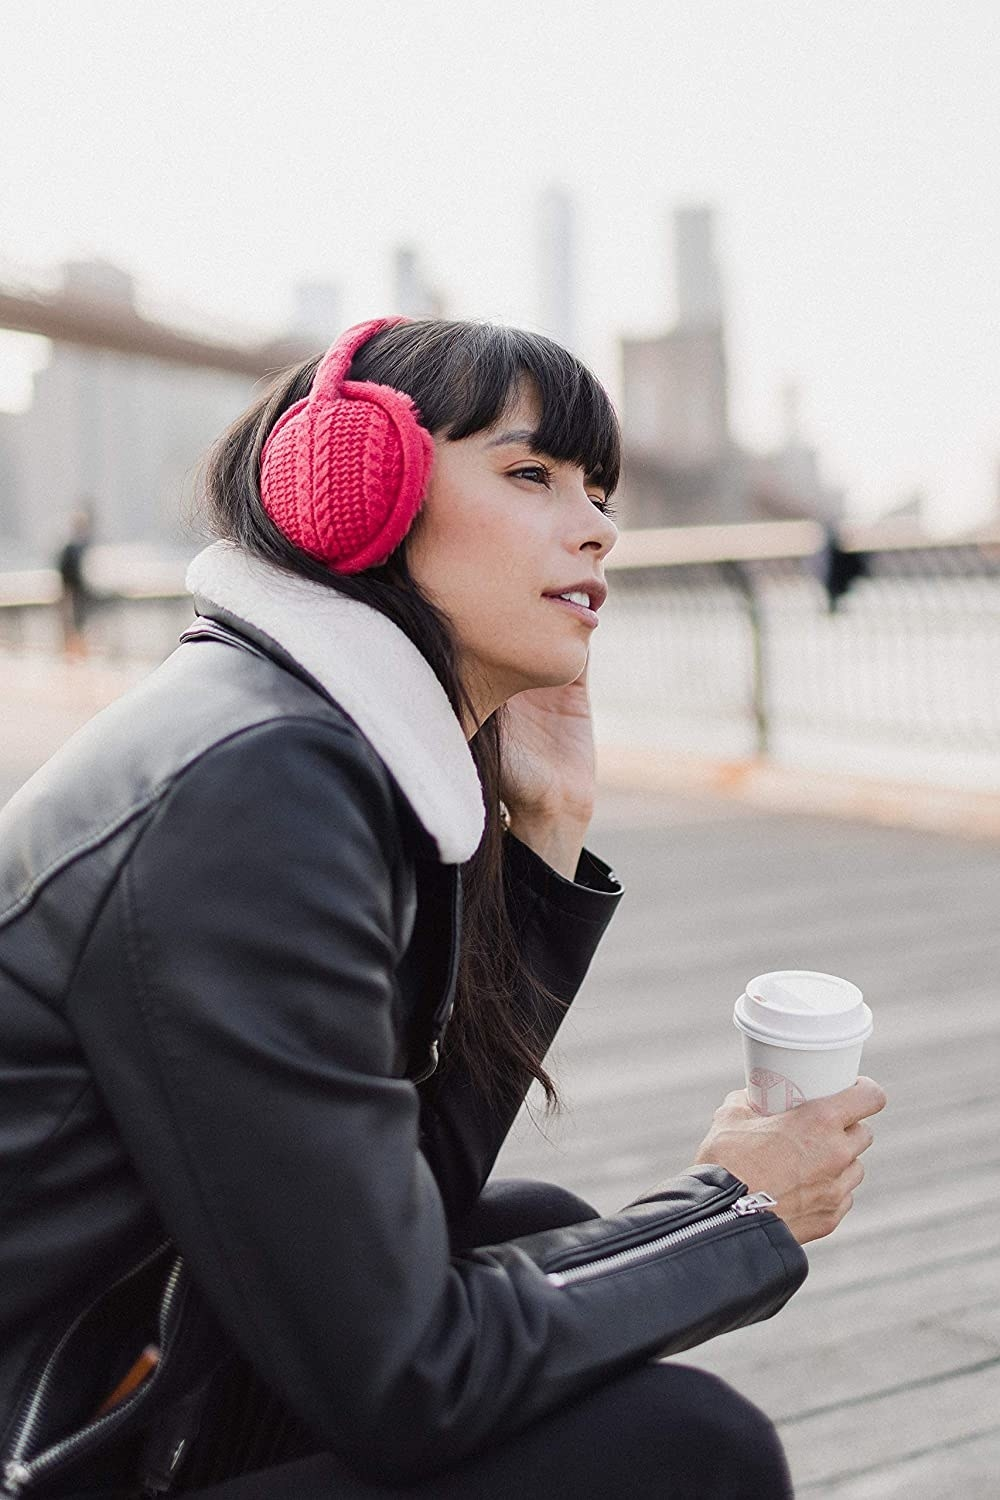 A model in the read headphones with a knit exterior and fluffy interior